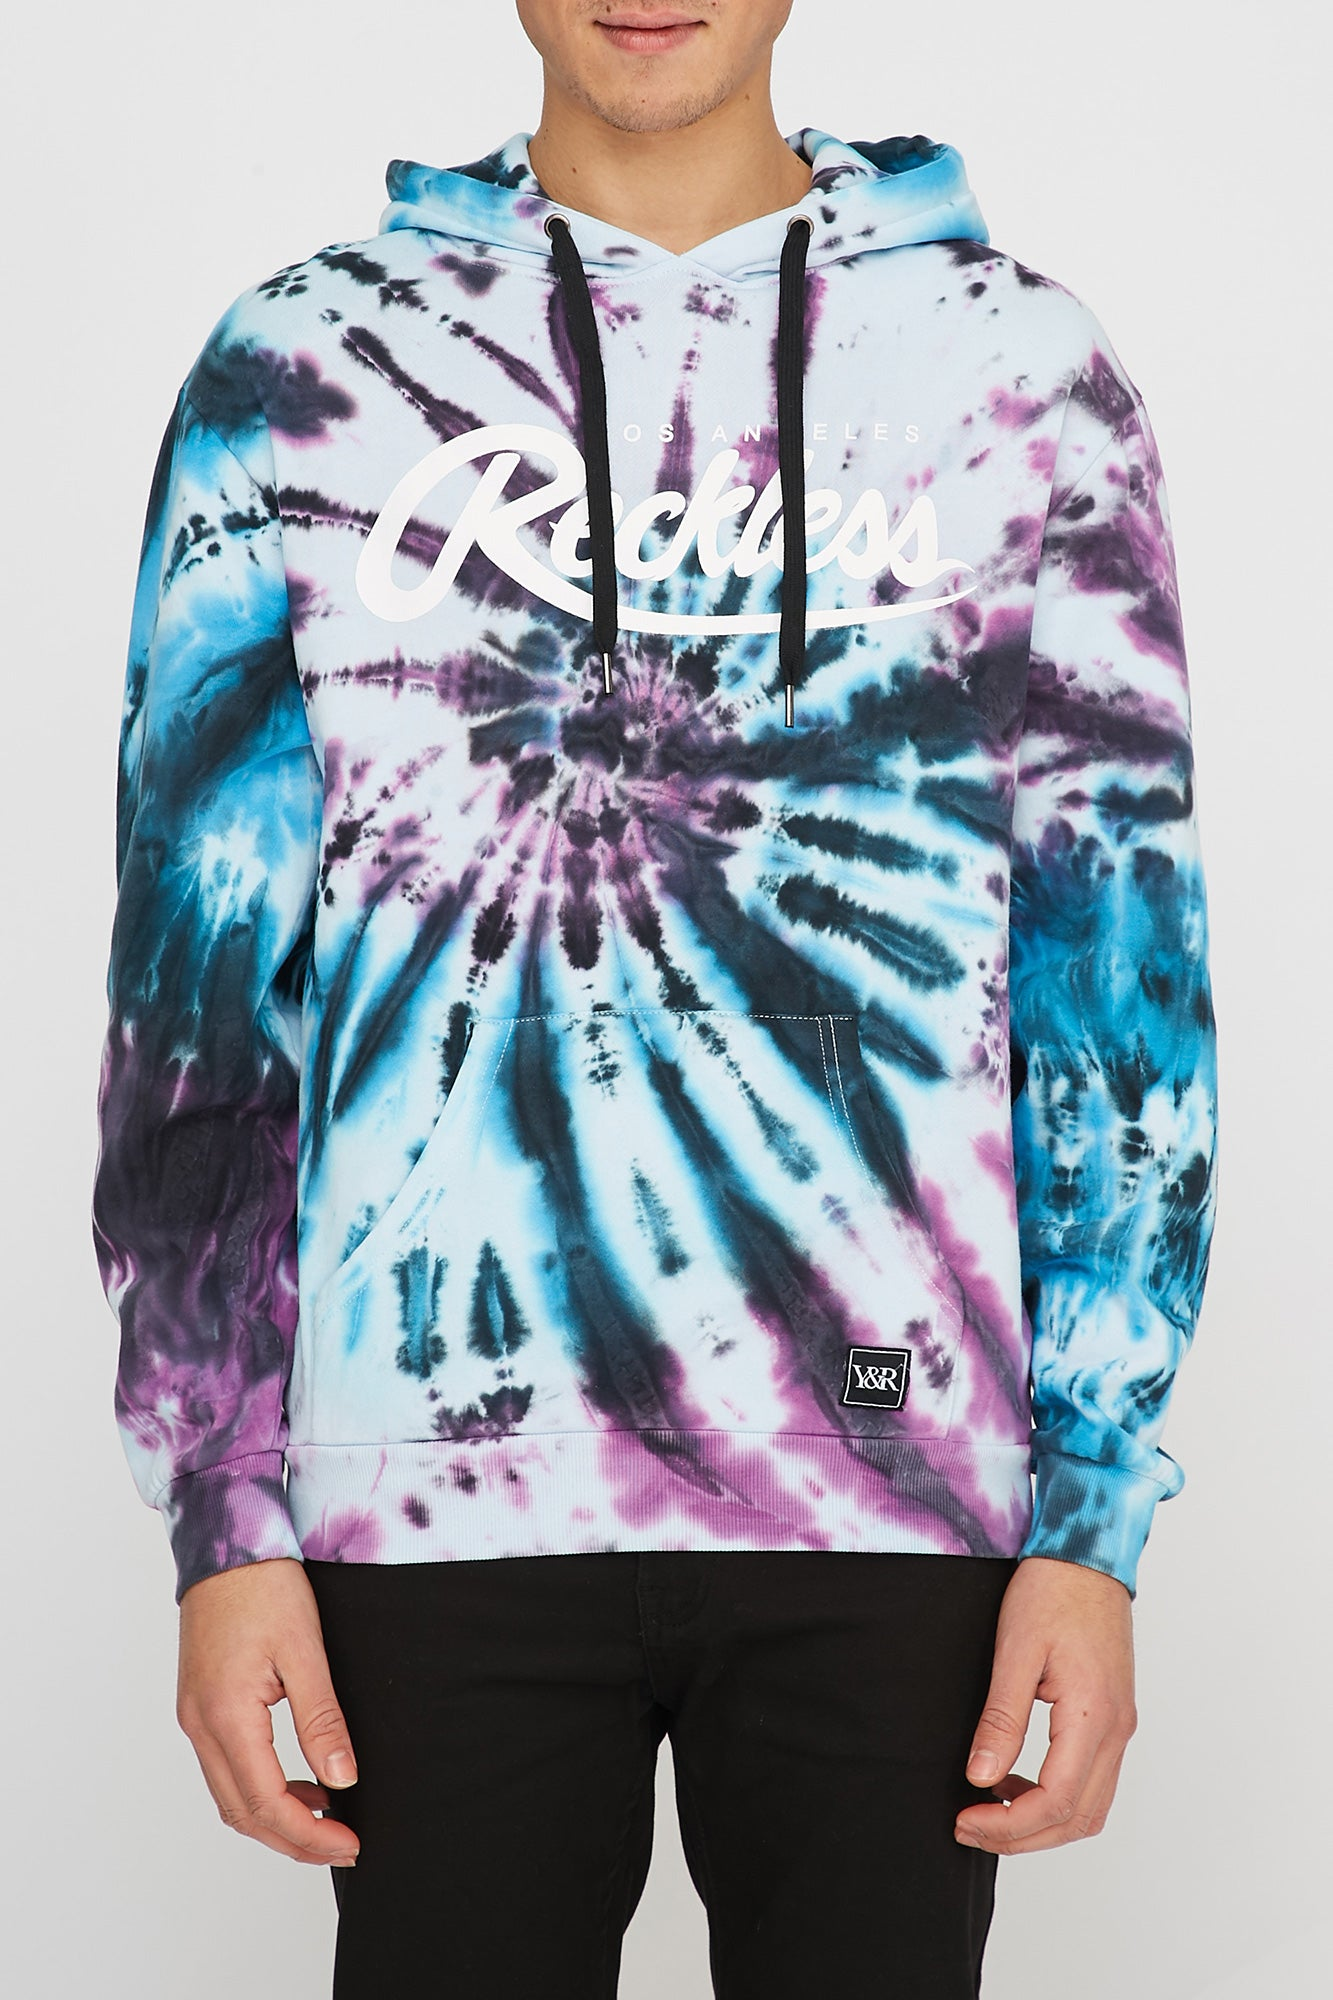 438e2776 Young & Reckless Swirl Tie Dye Hoodie   West49